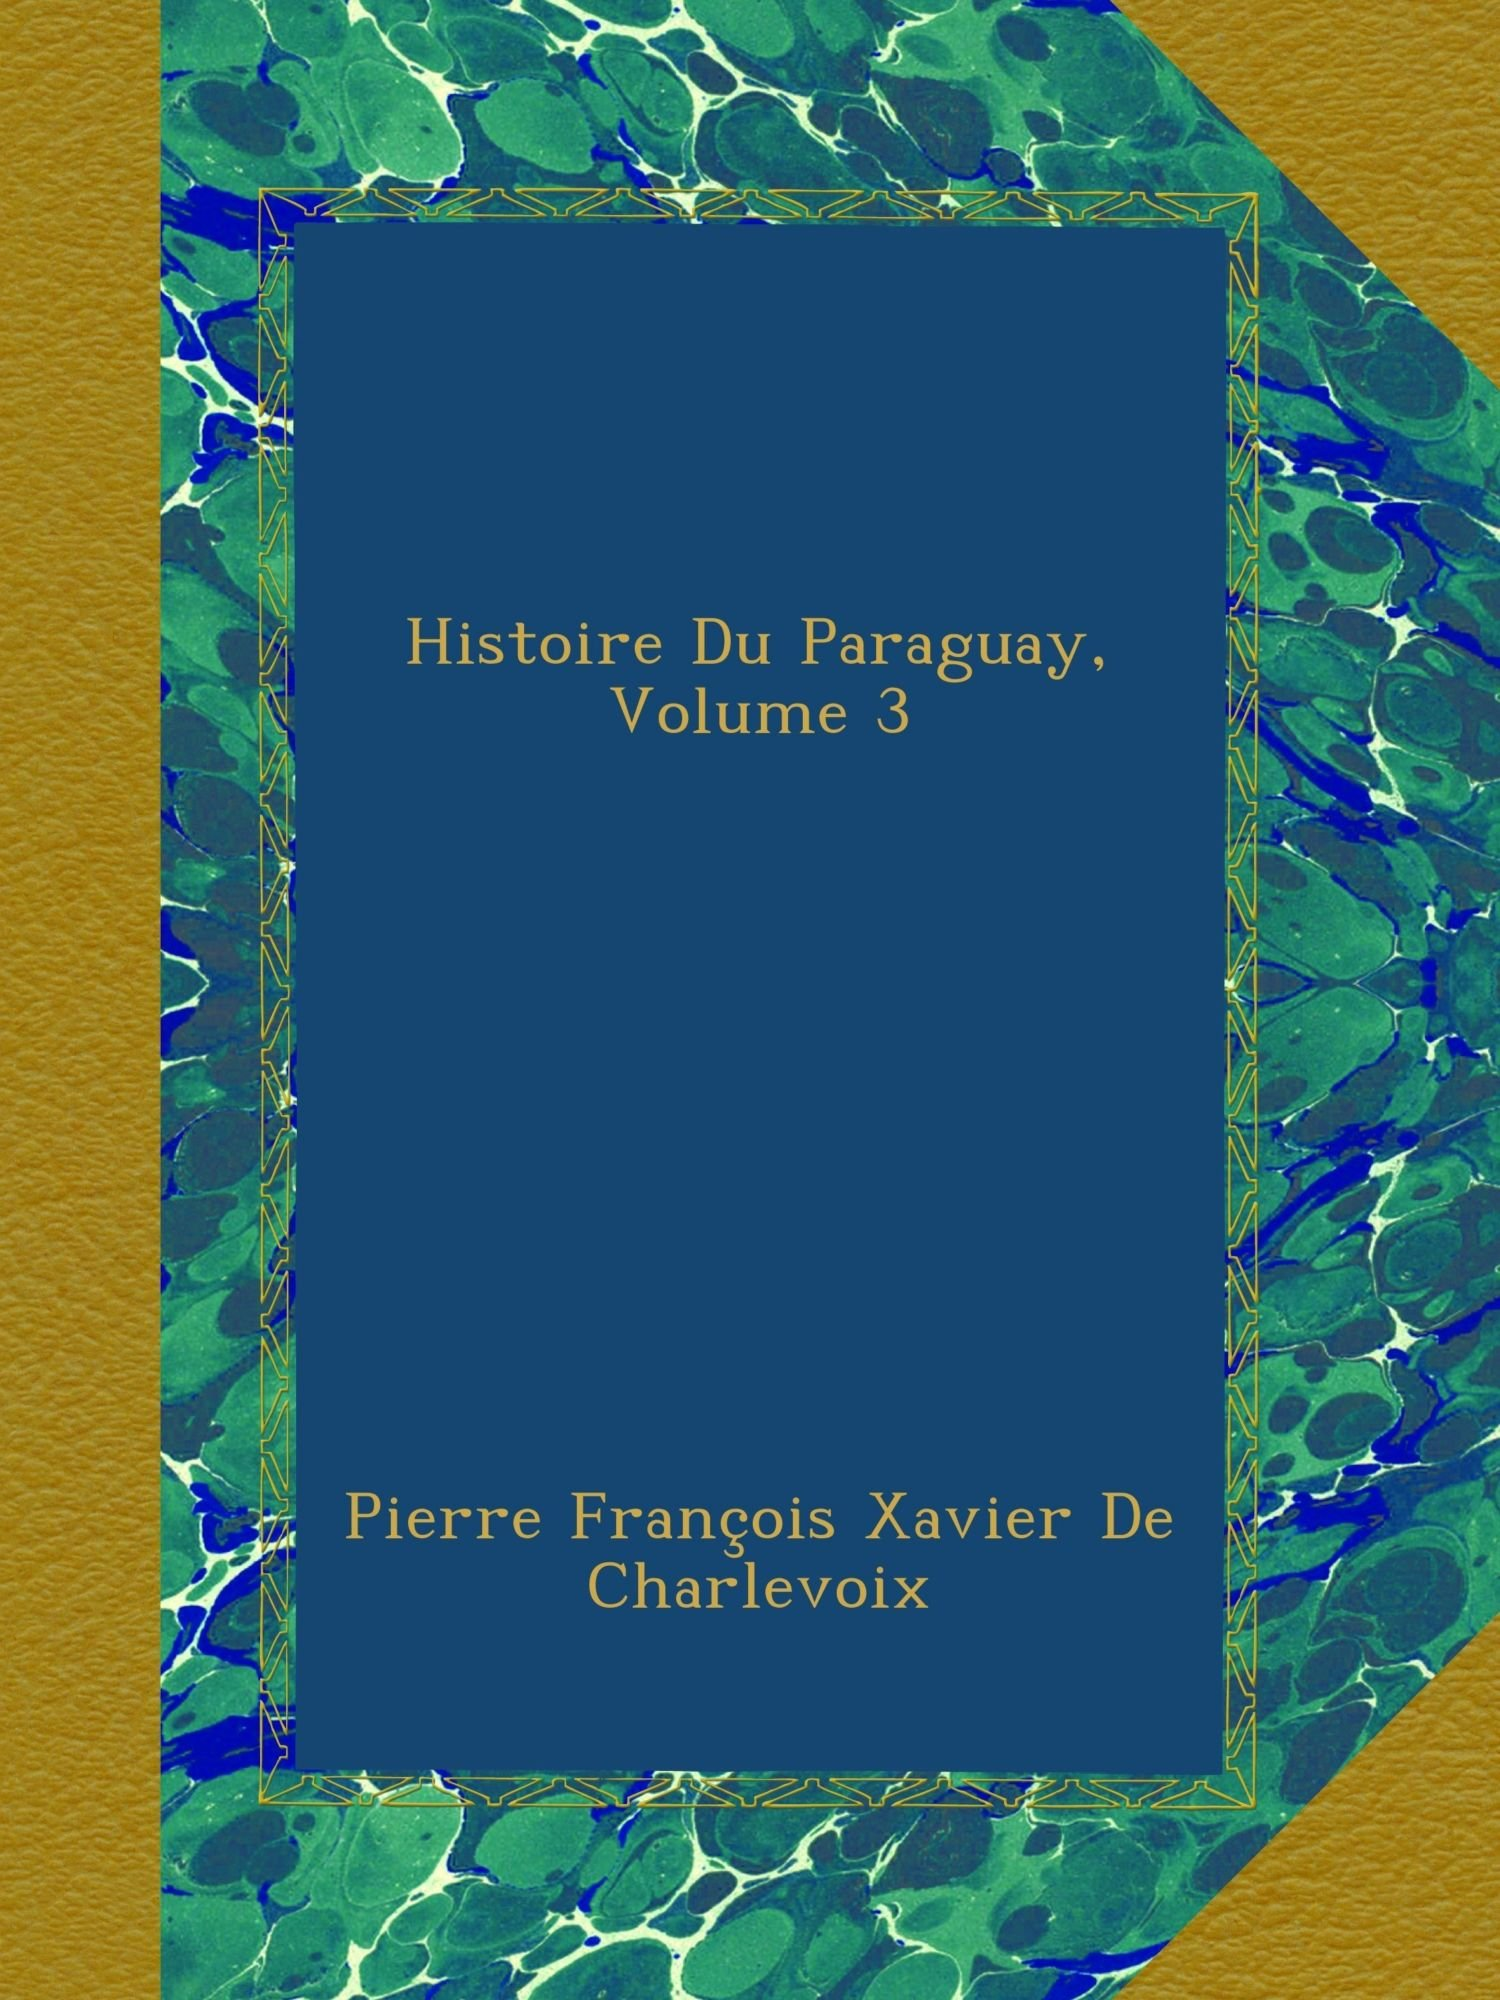 Histoire Du Paraguay, Volume 3 (French Edition)